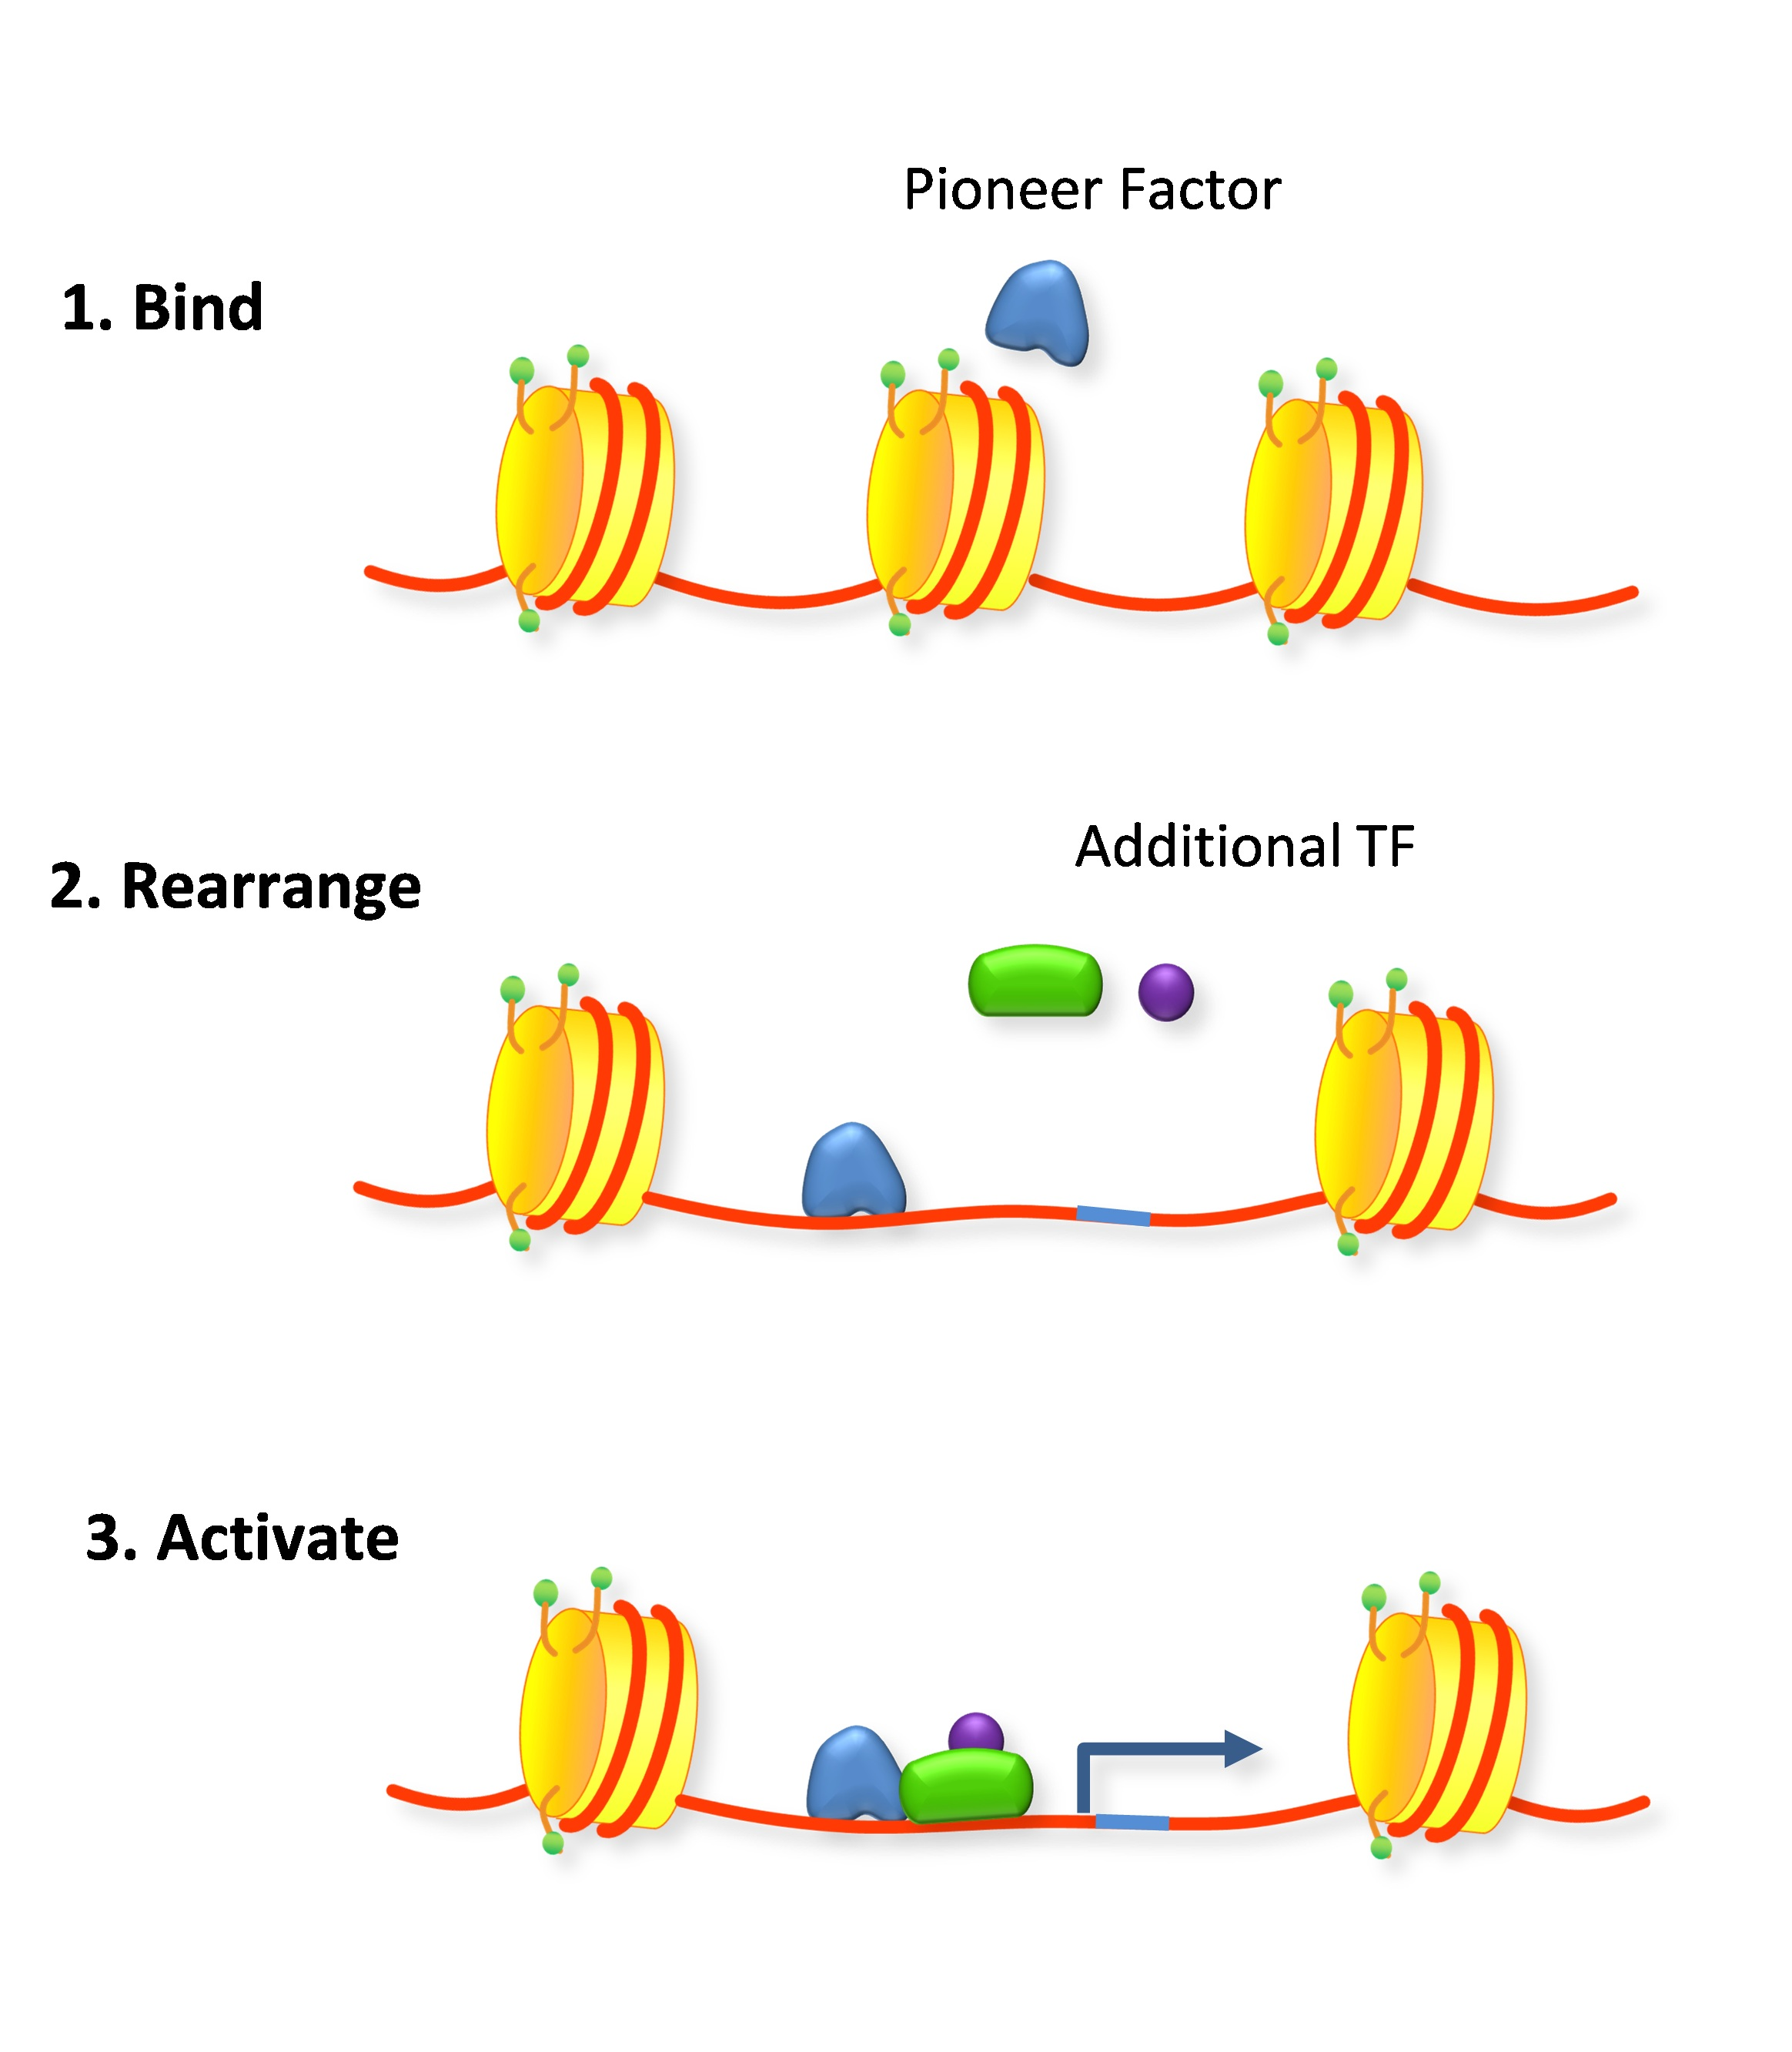 Remodeling Software File Pioneer Factor Rearrange The Nucleosome Jpg